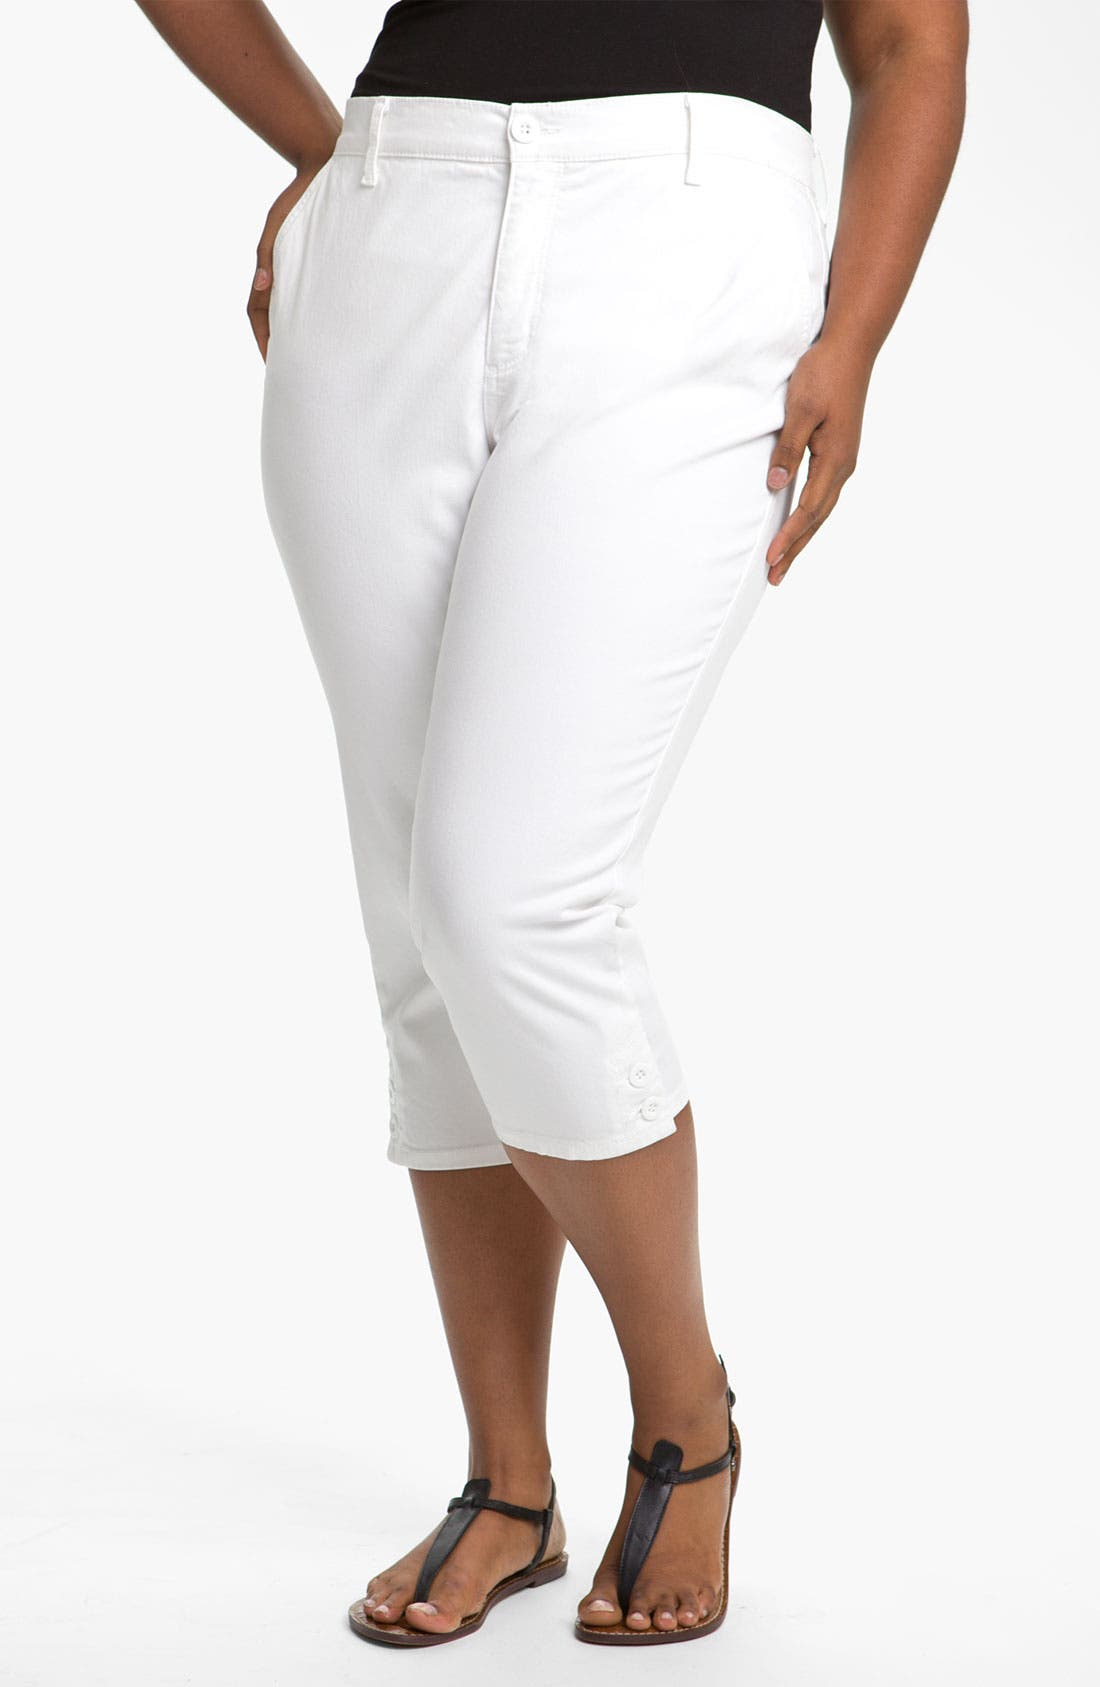 Alternate Image 1 Selected - NYDJ 'Sammie' Crop Stretch Jeans (Plus Size)